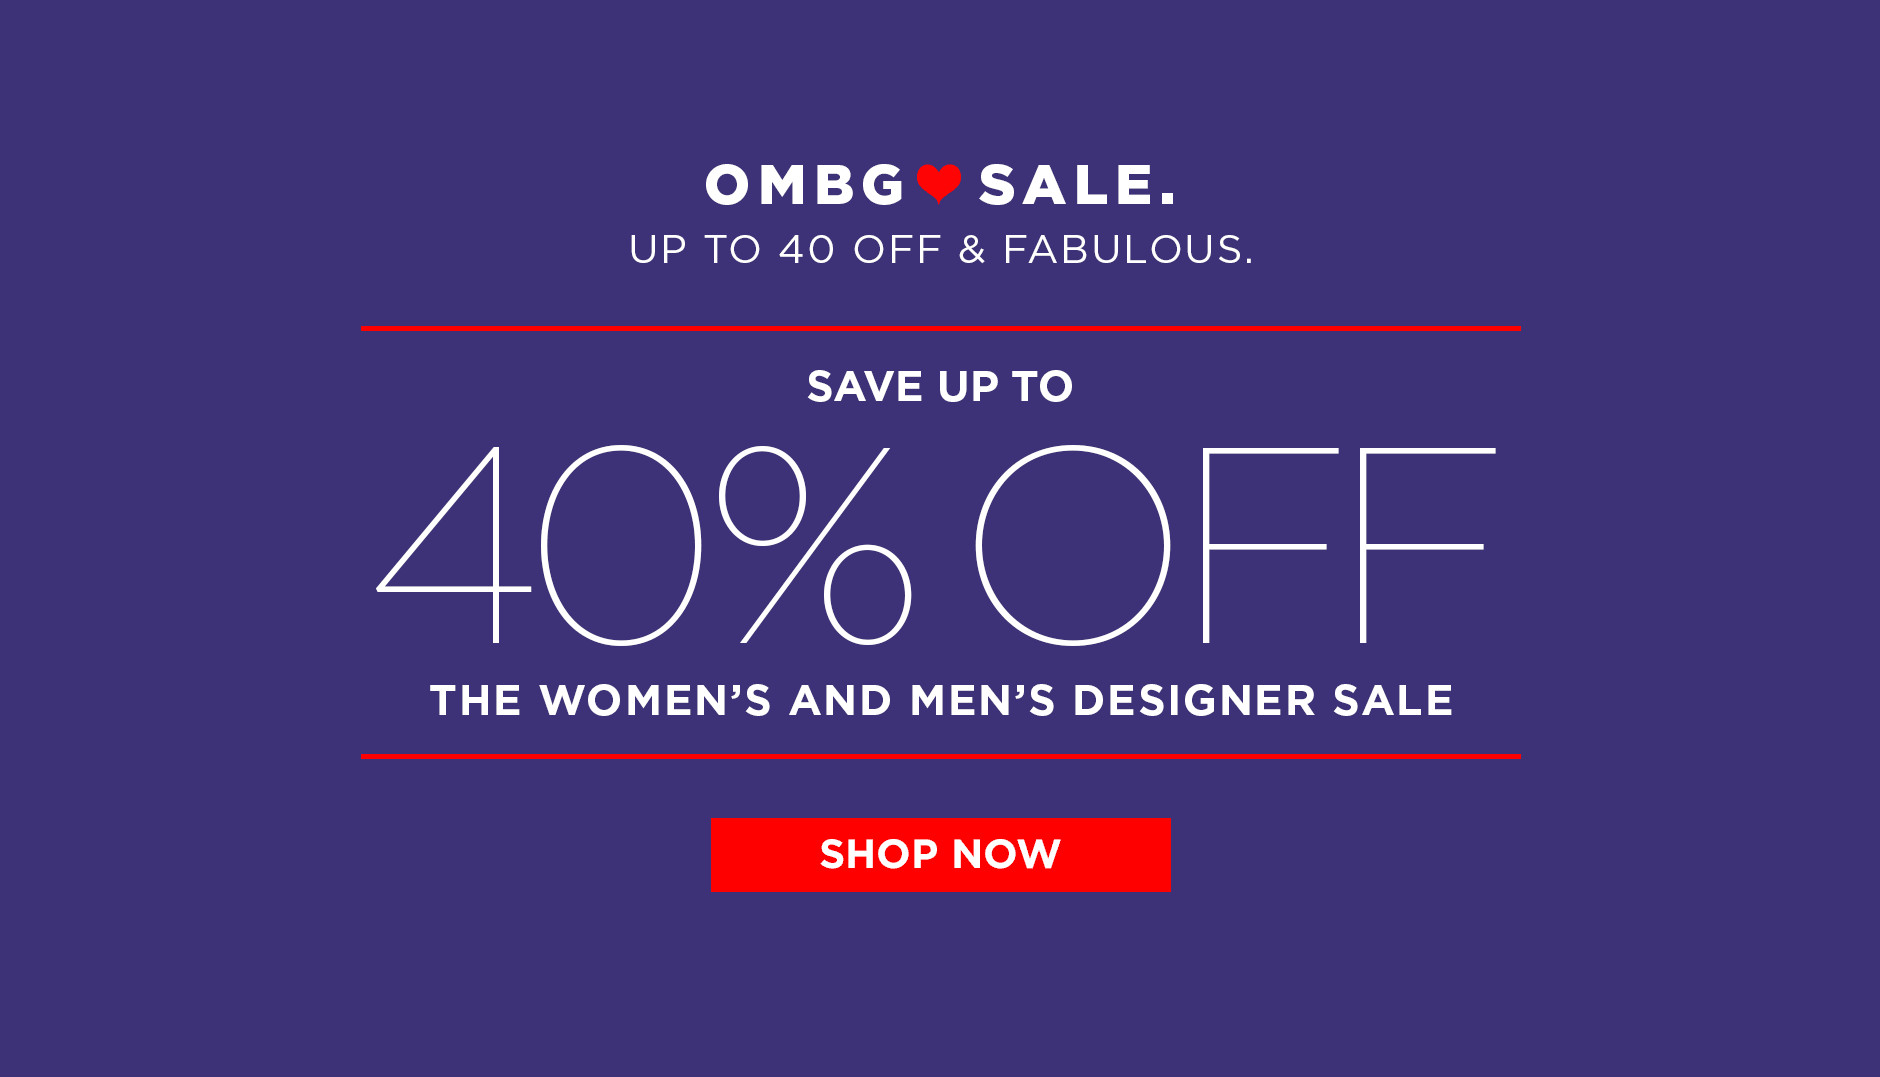 The Women's and Men's Designer Sale